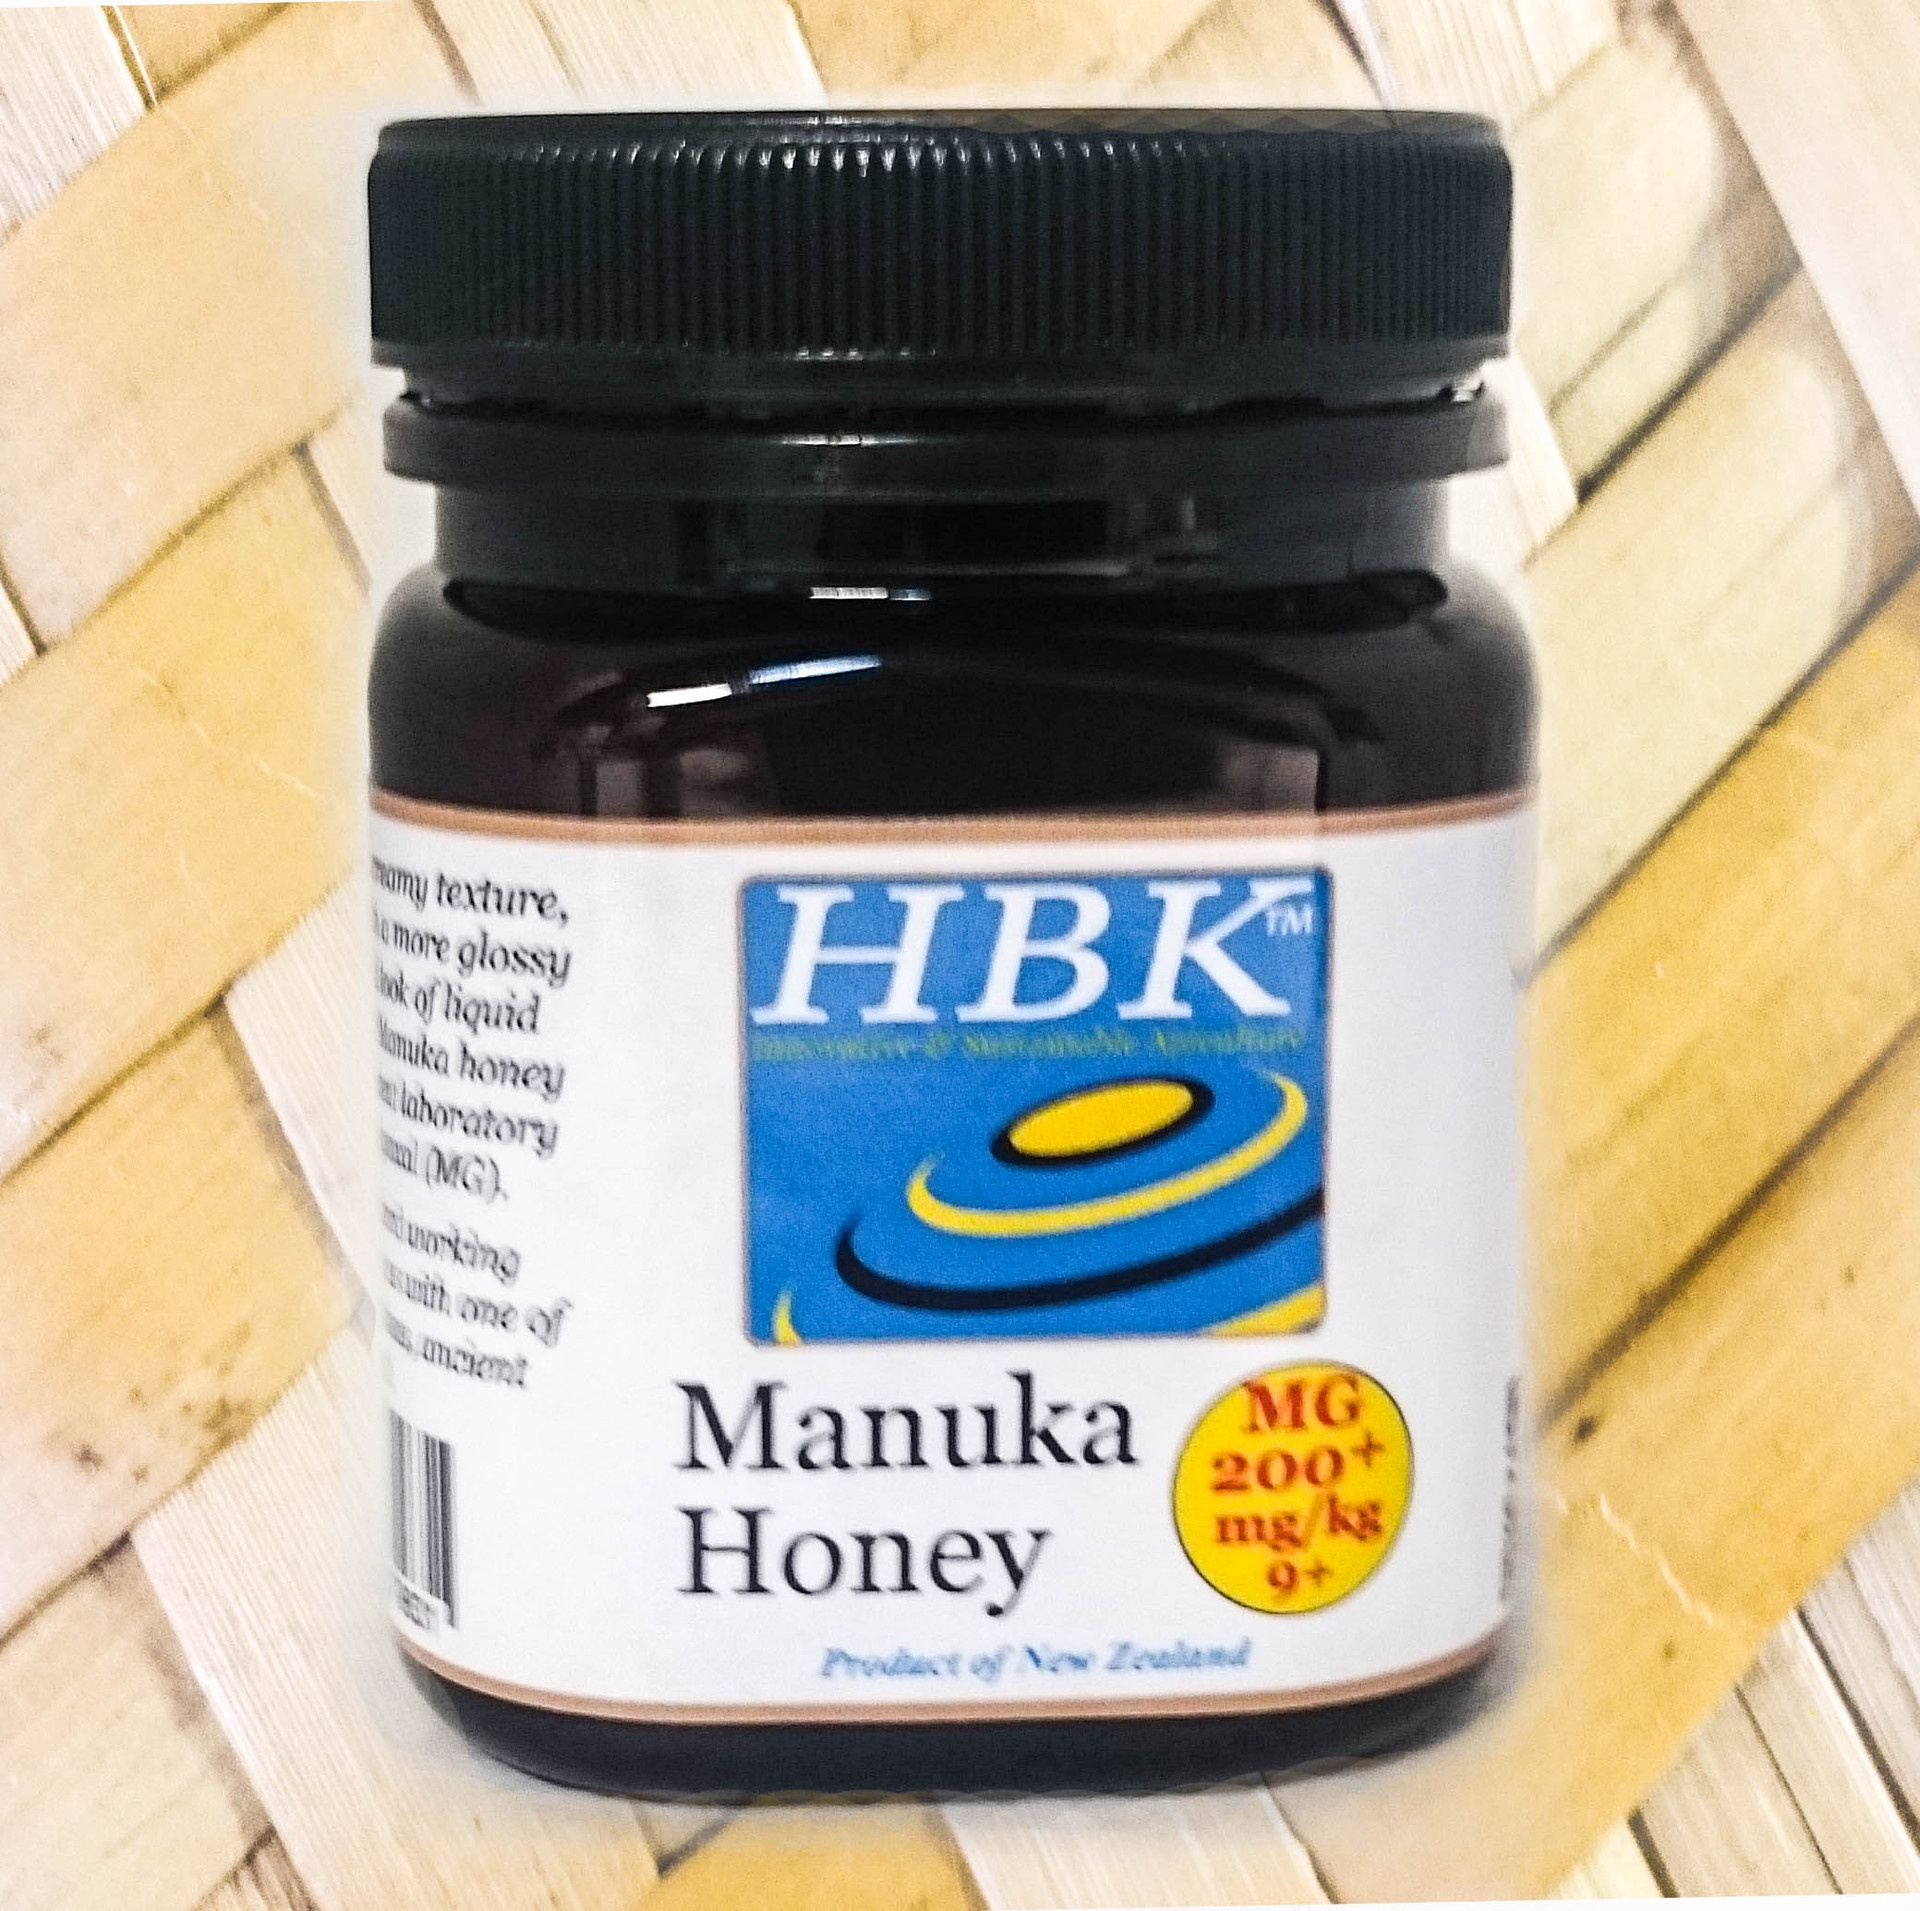 Manuka Honey MG UMF 9+ 200+ mg/kg